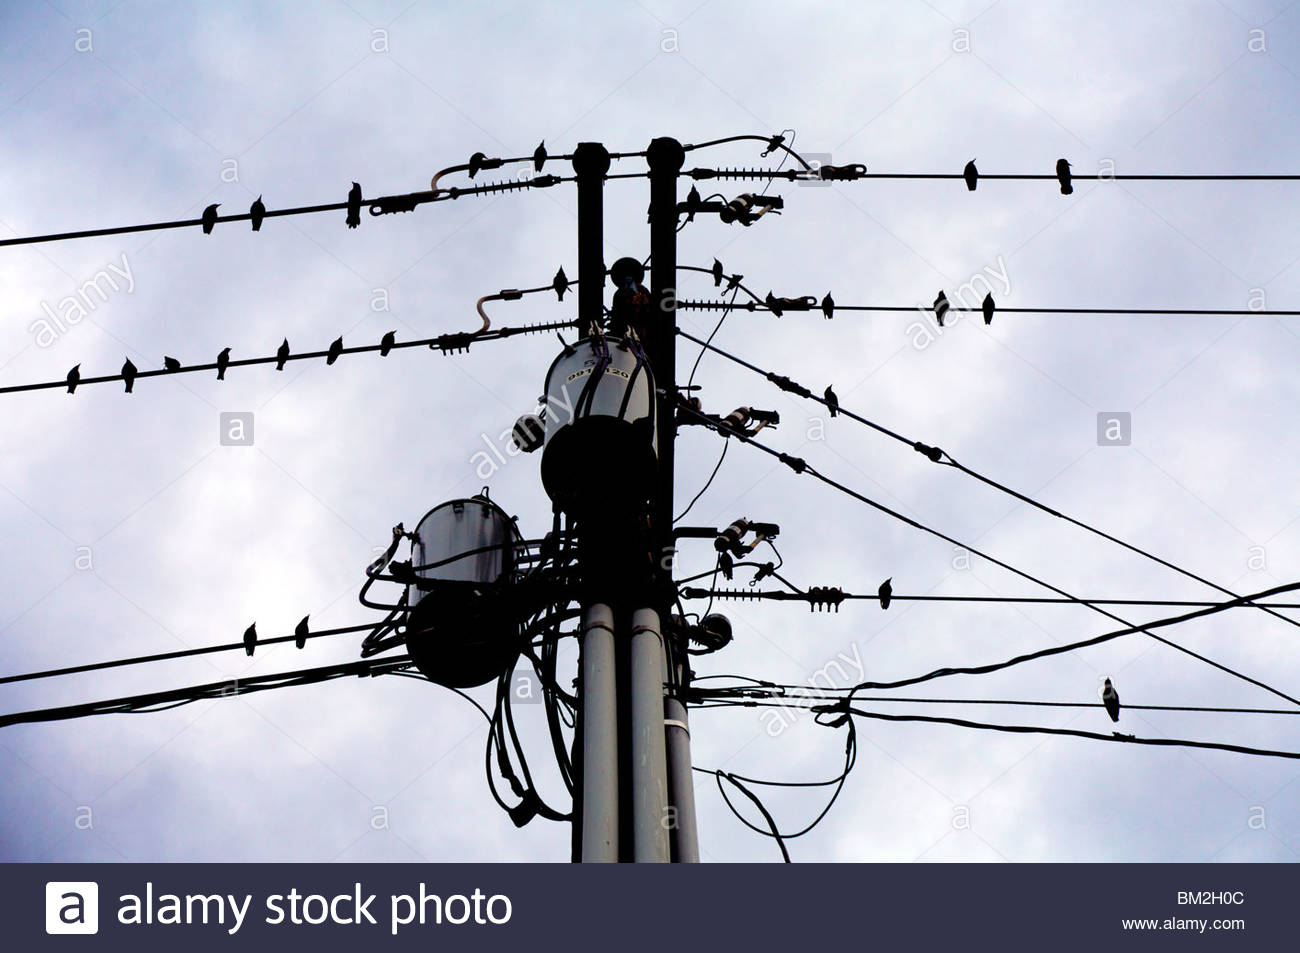 Sihlouettes of birds perched on utility wires. Kansas, United States. - Stock Image